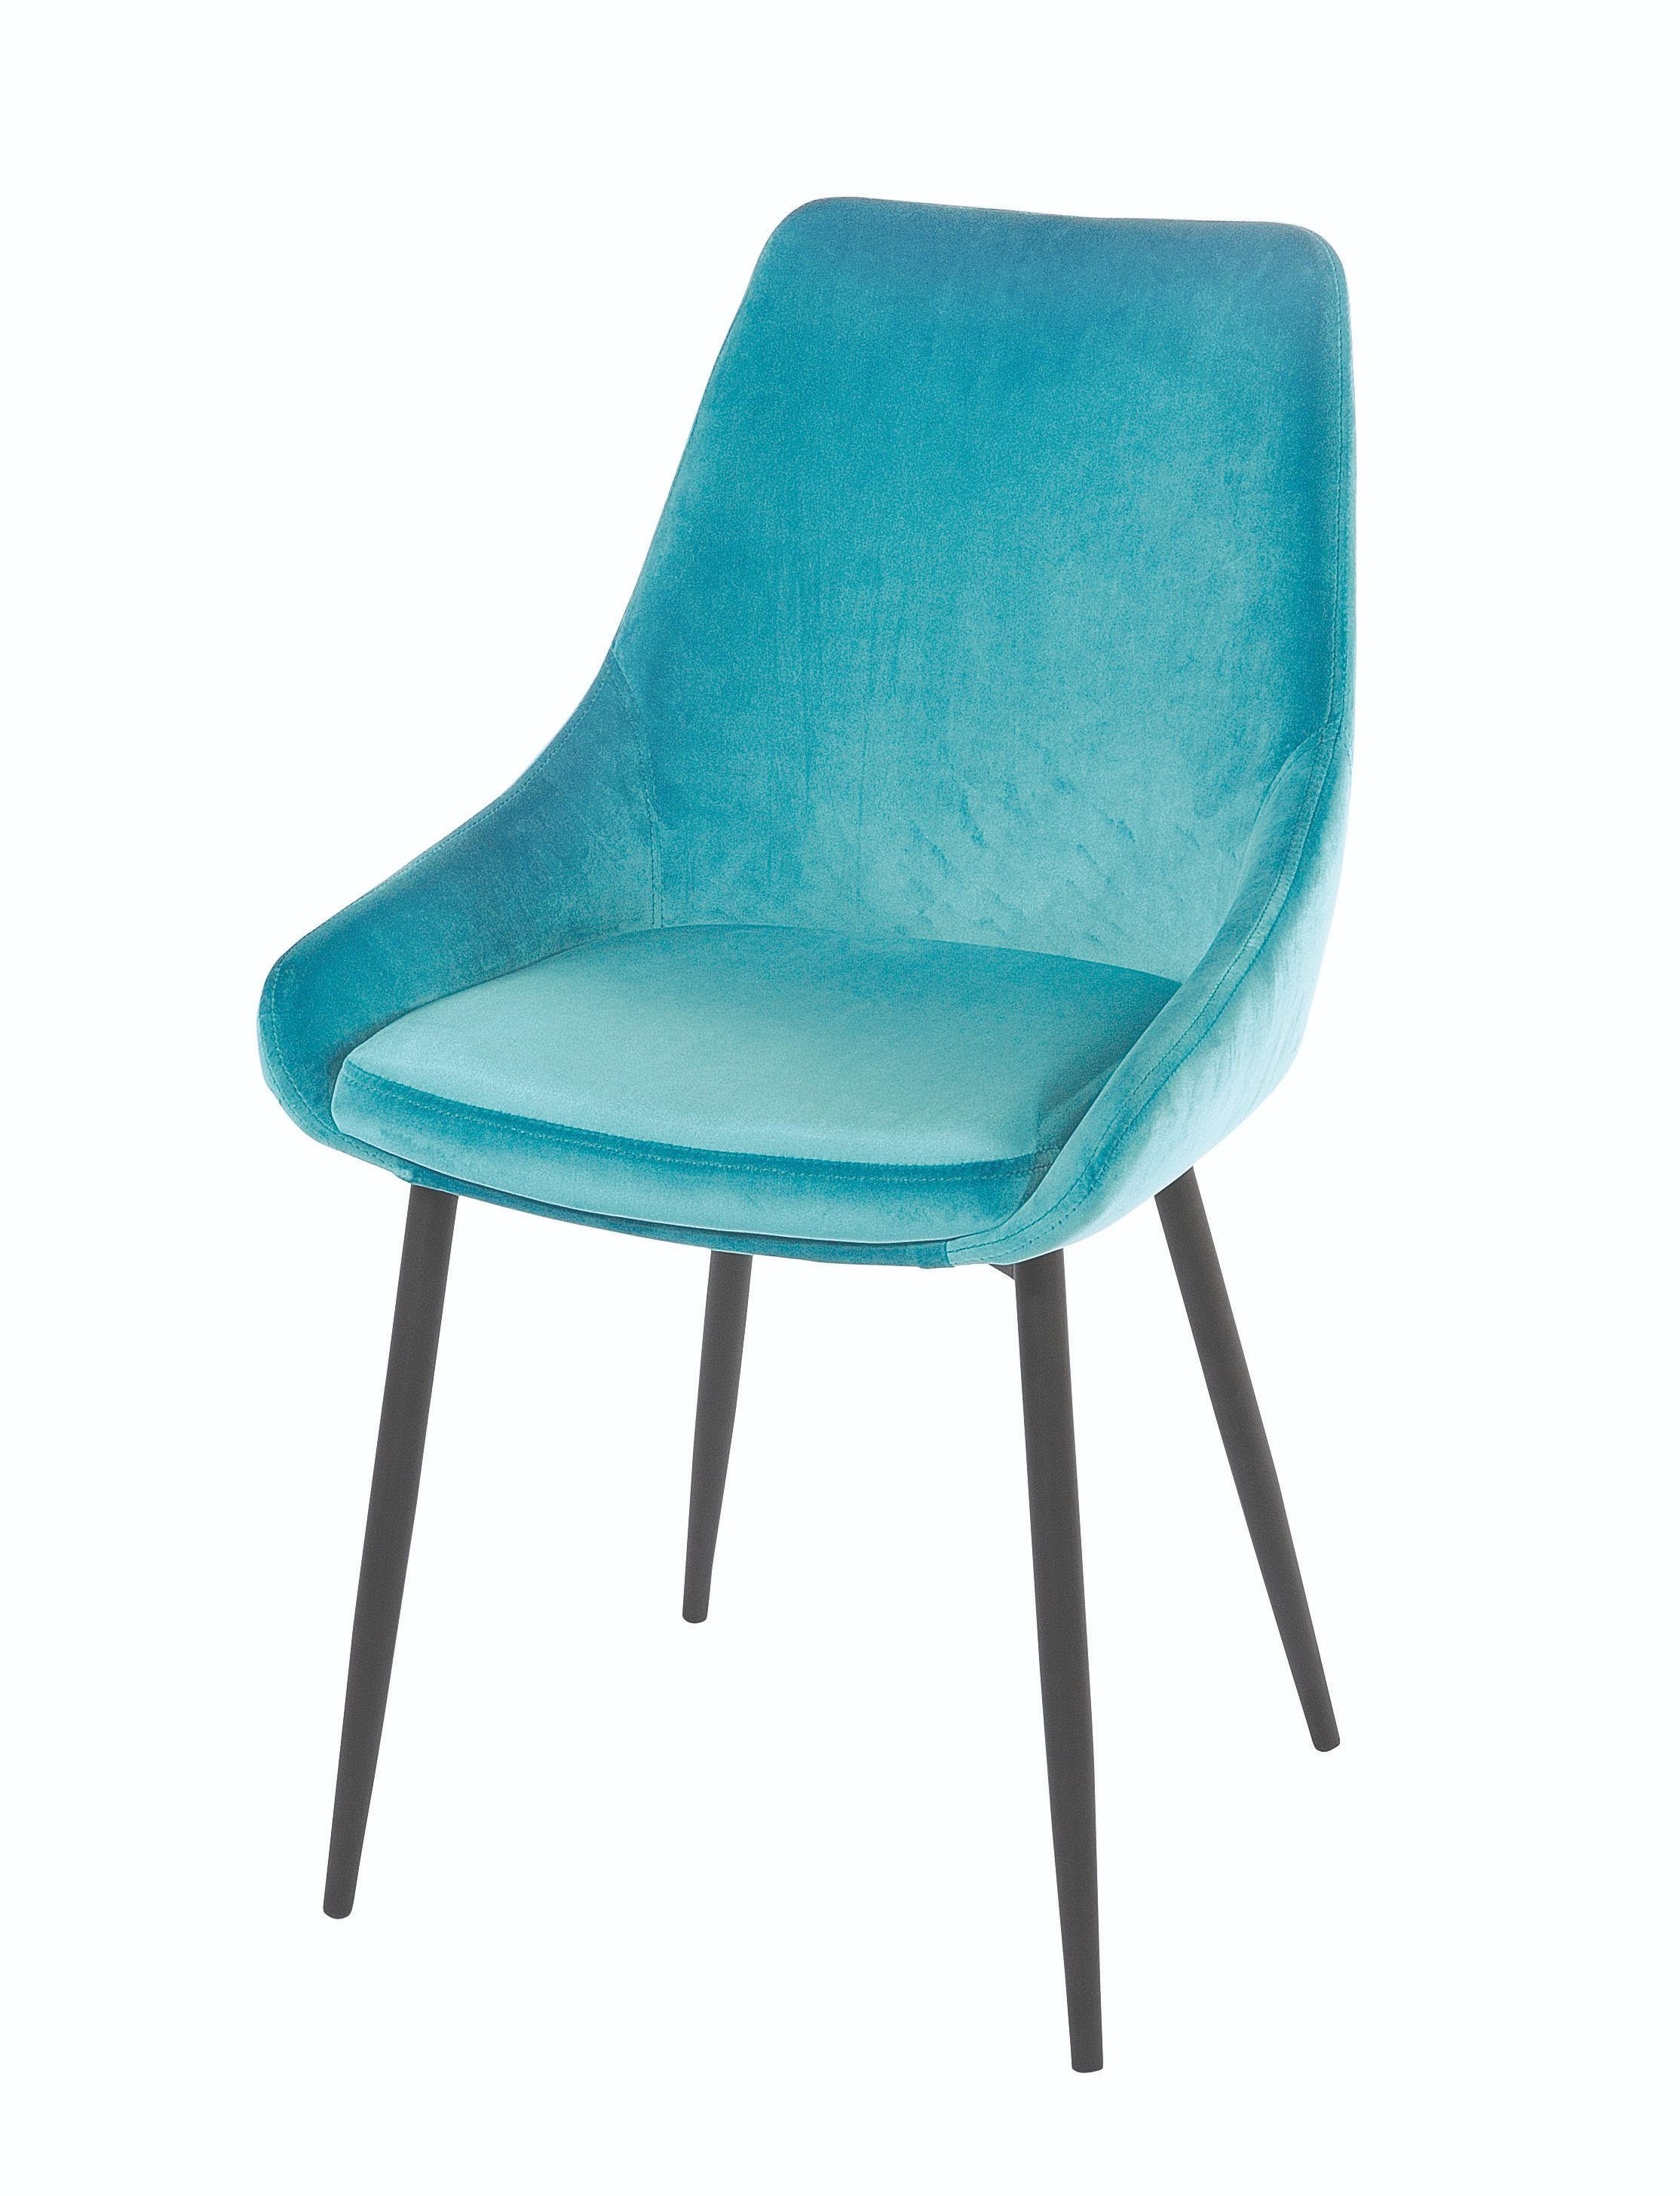 SIERRA CHAIR Turquoise Upholstered Chair